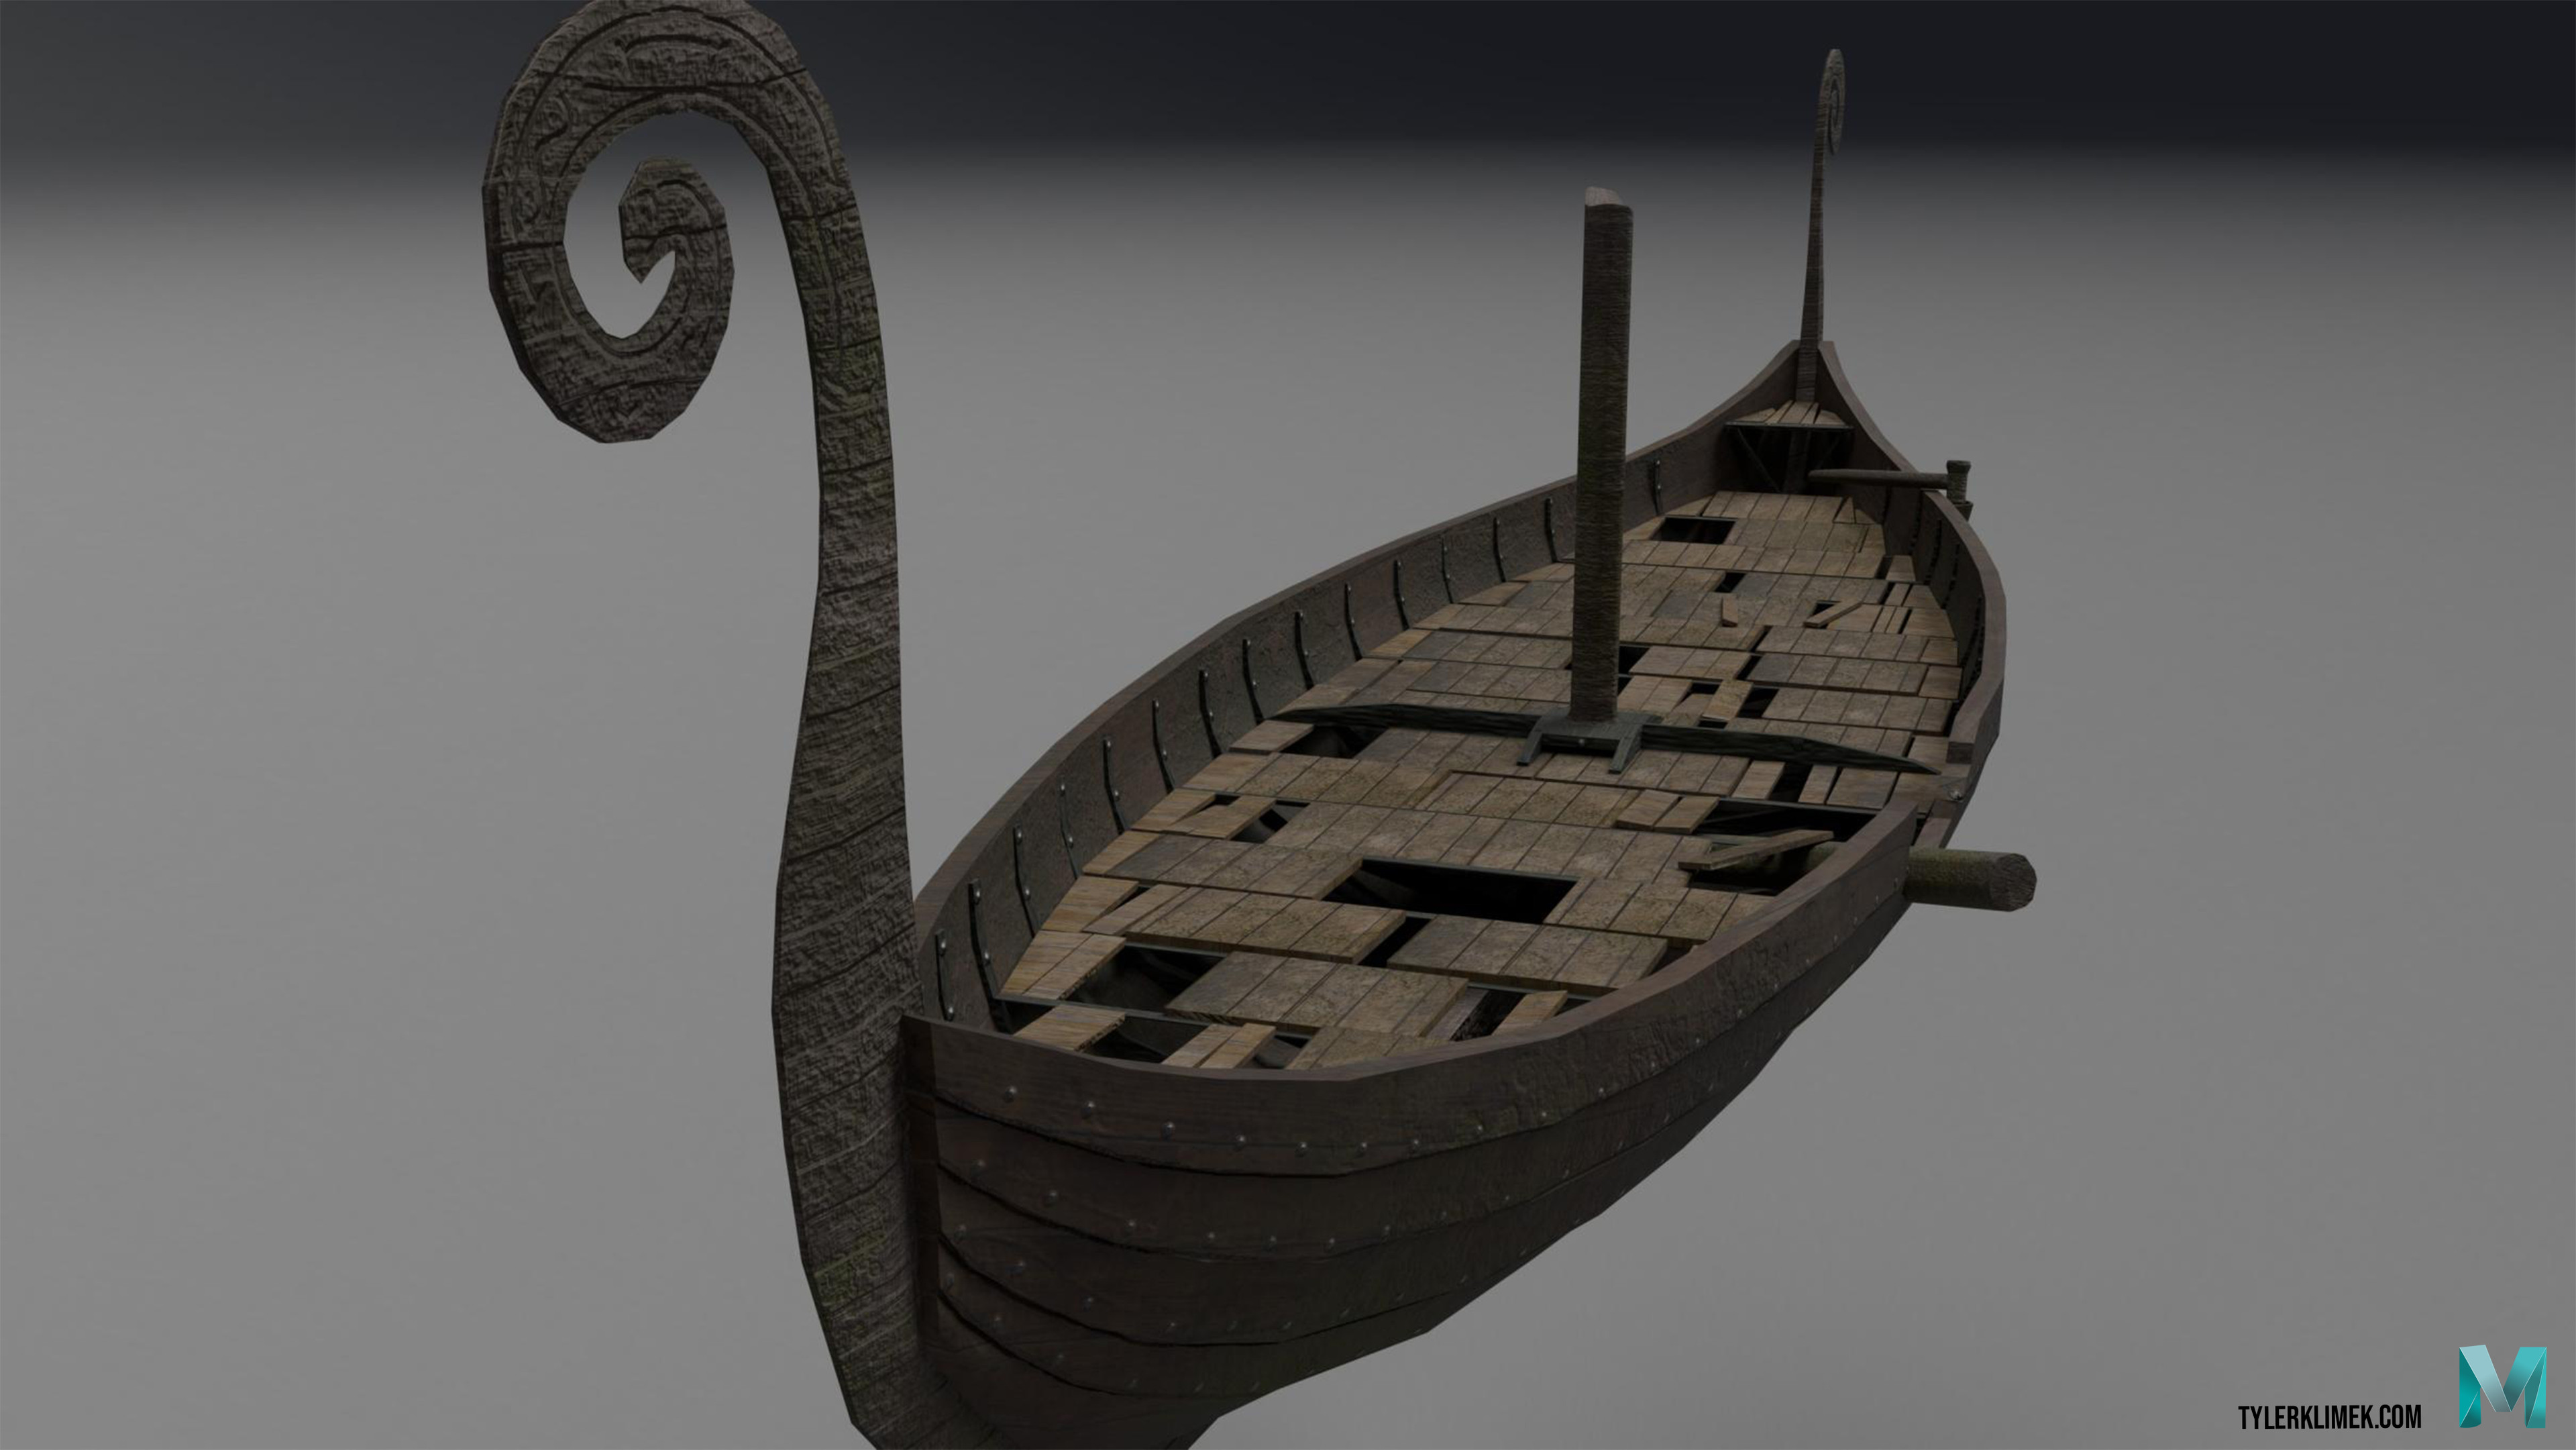 The long-ship was modeled in Maya and textured with Substance painter.